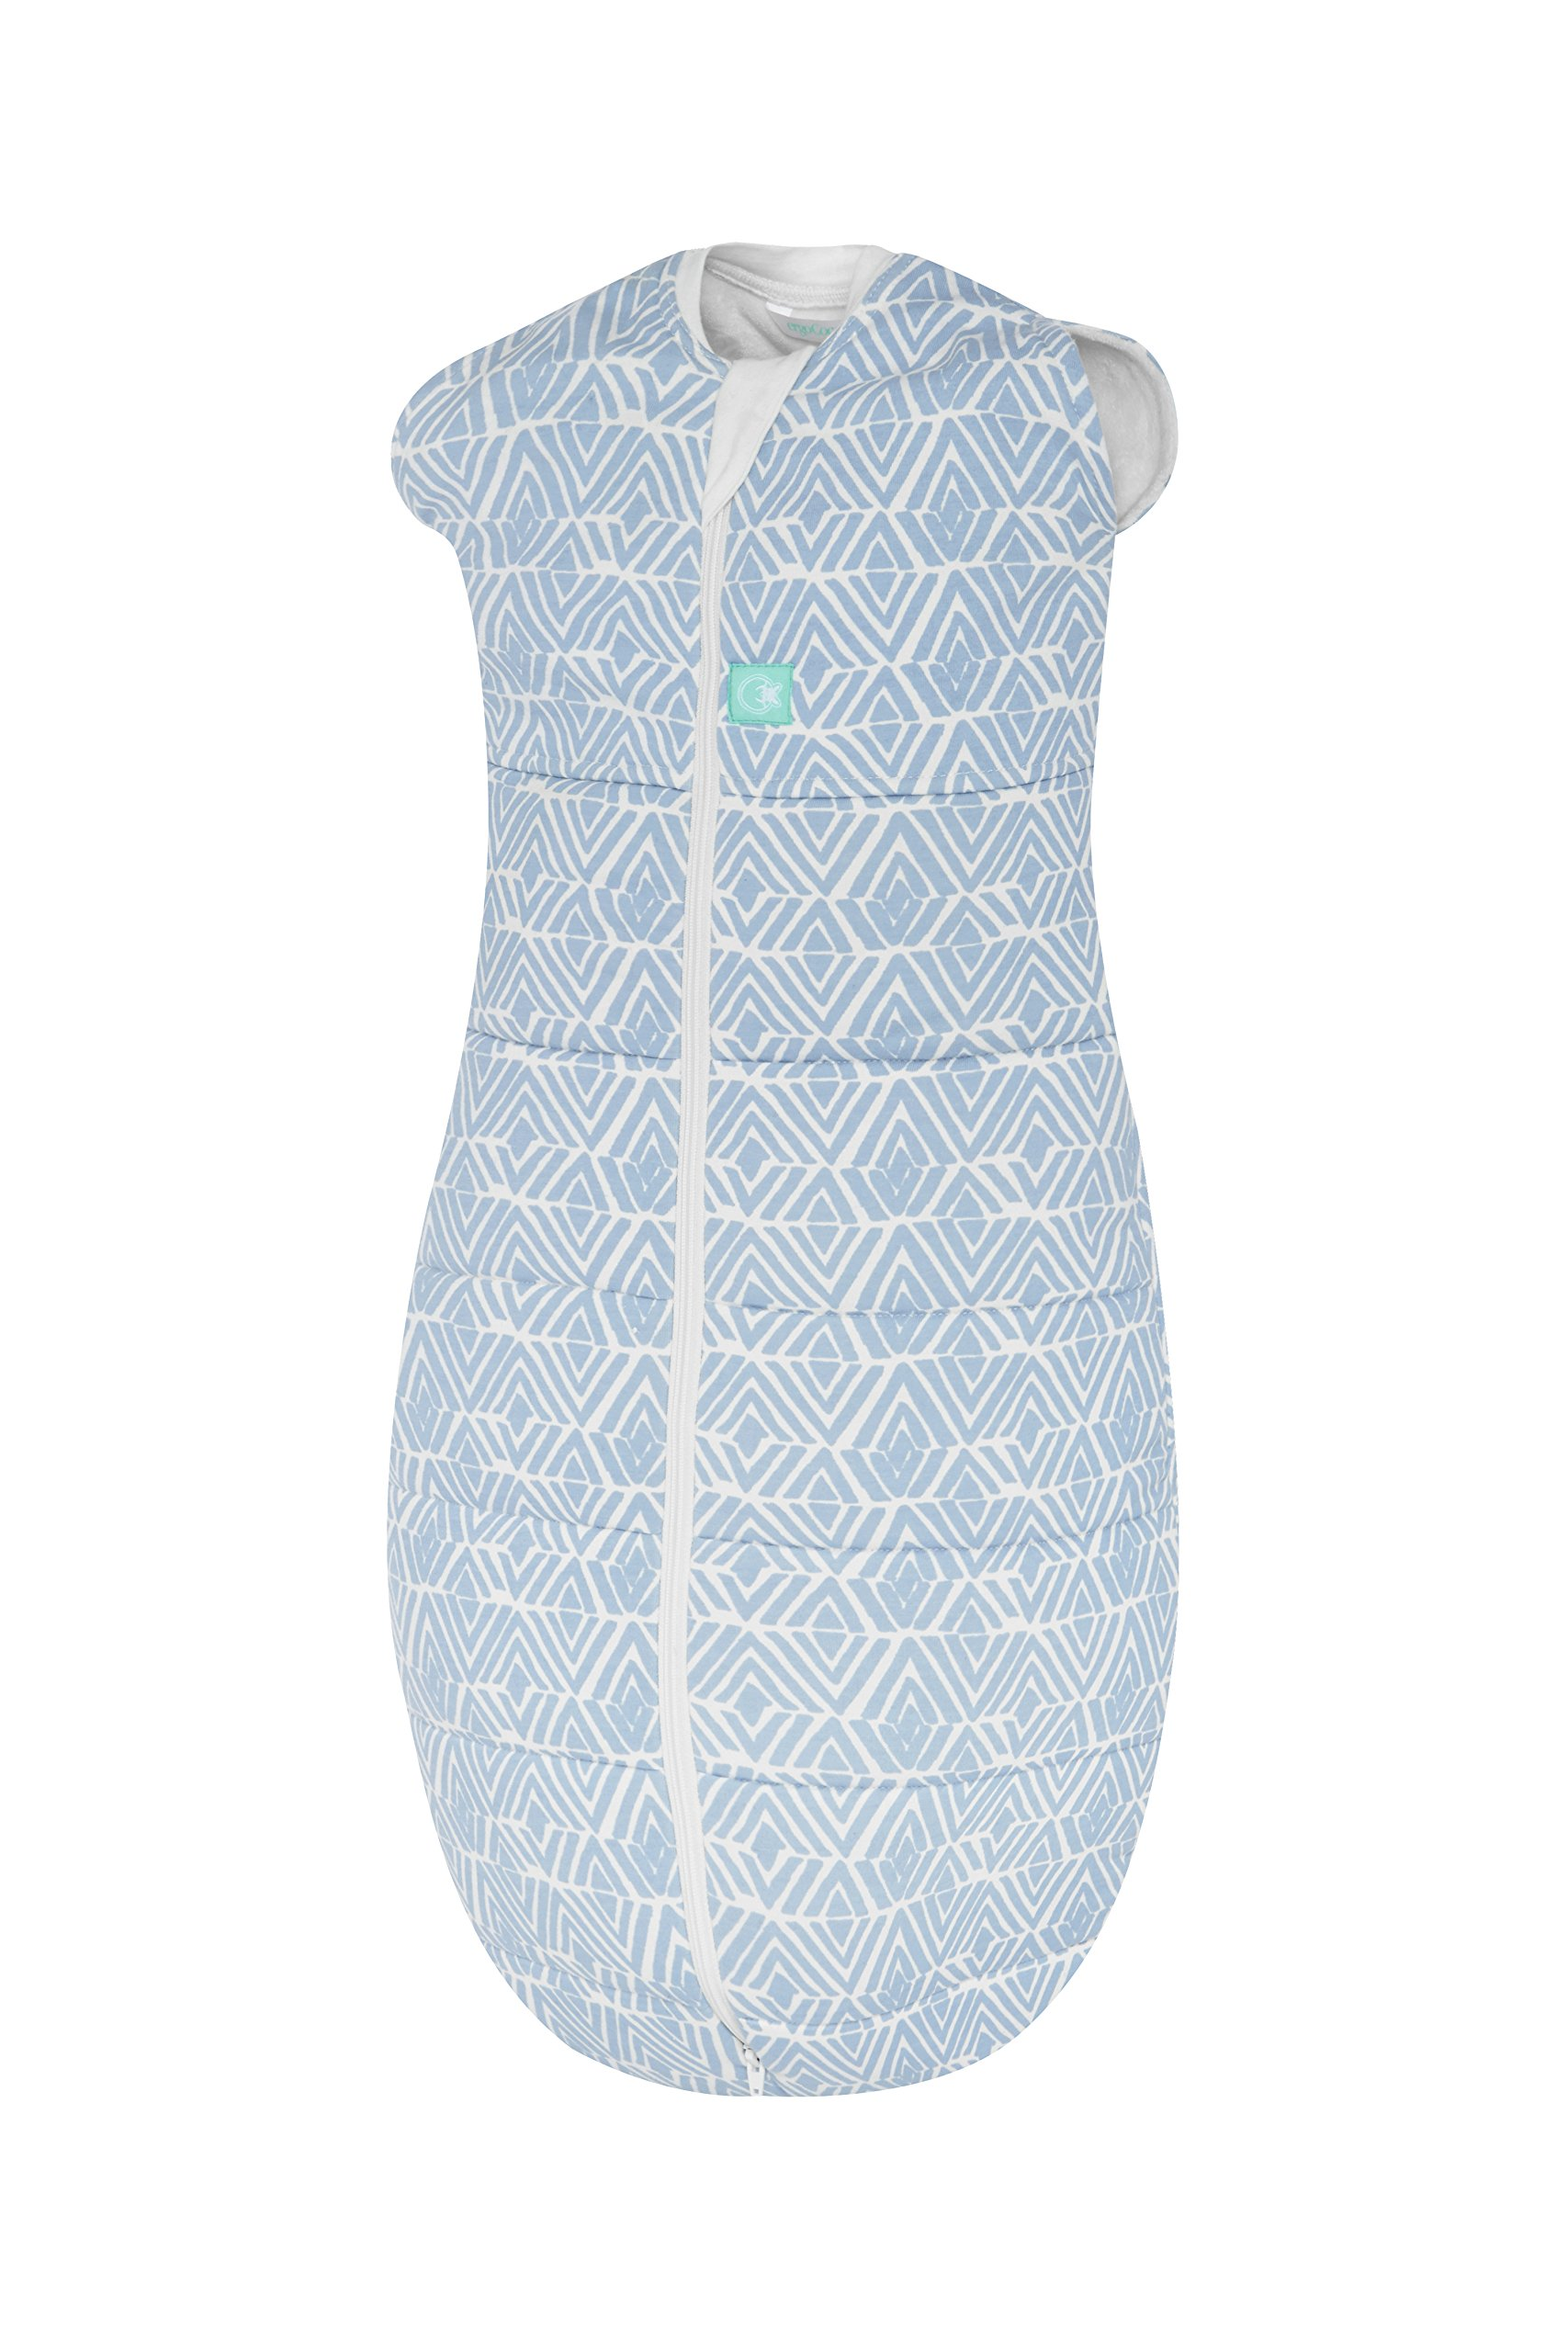 ergoPouch 2.5 Tog Swaddle and Sleep Bag, Tribal Blue, 3-12 Months